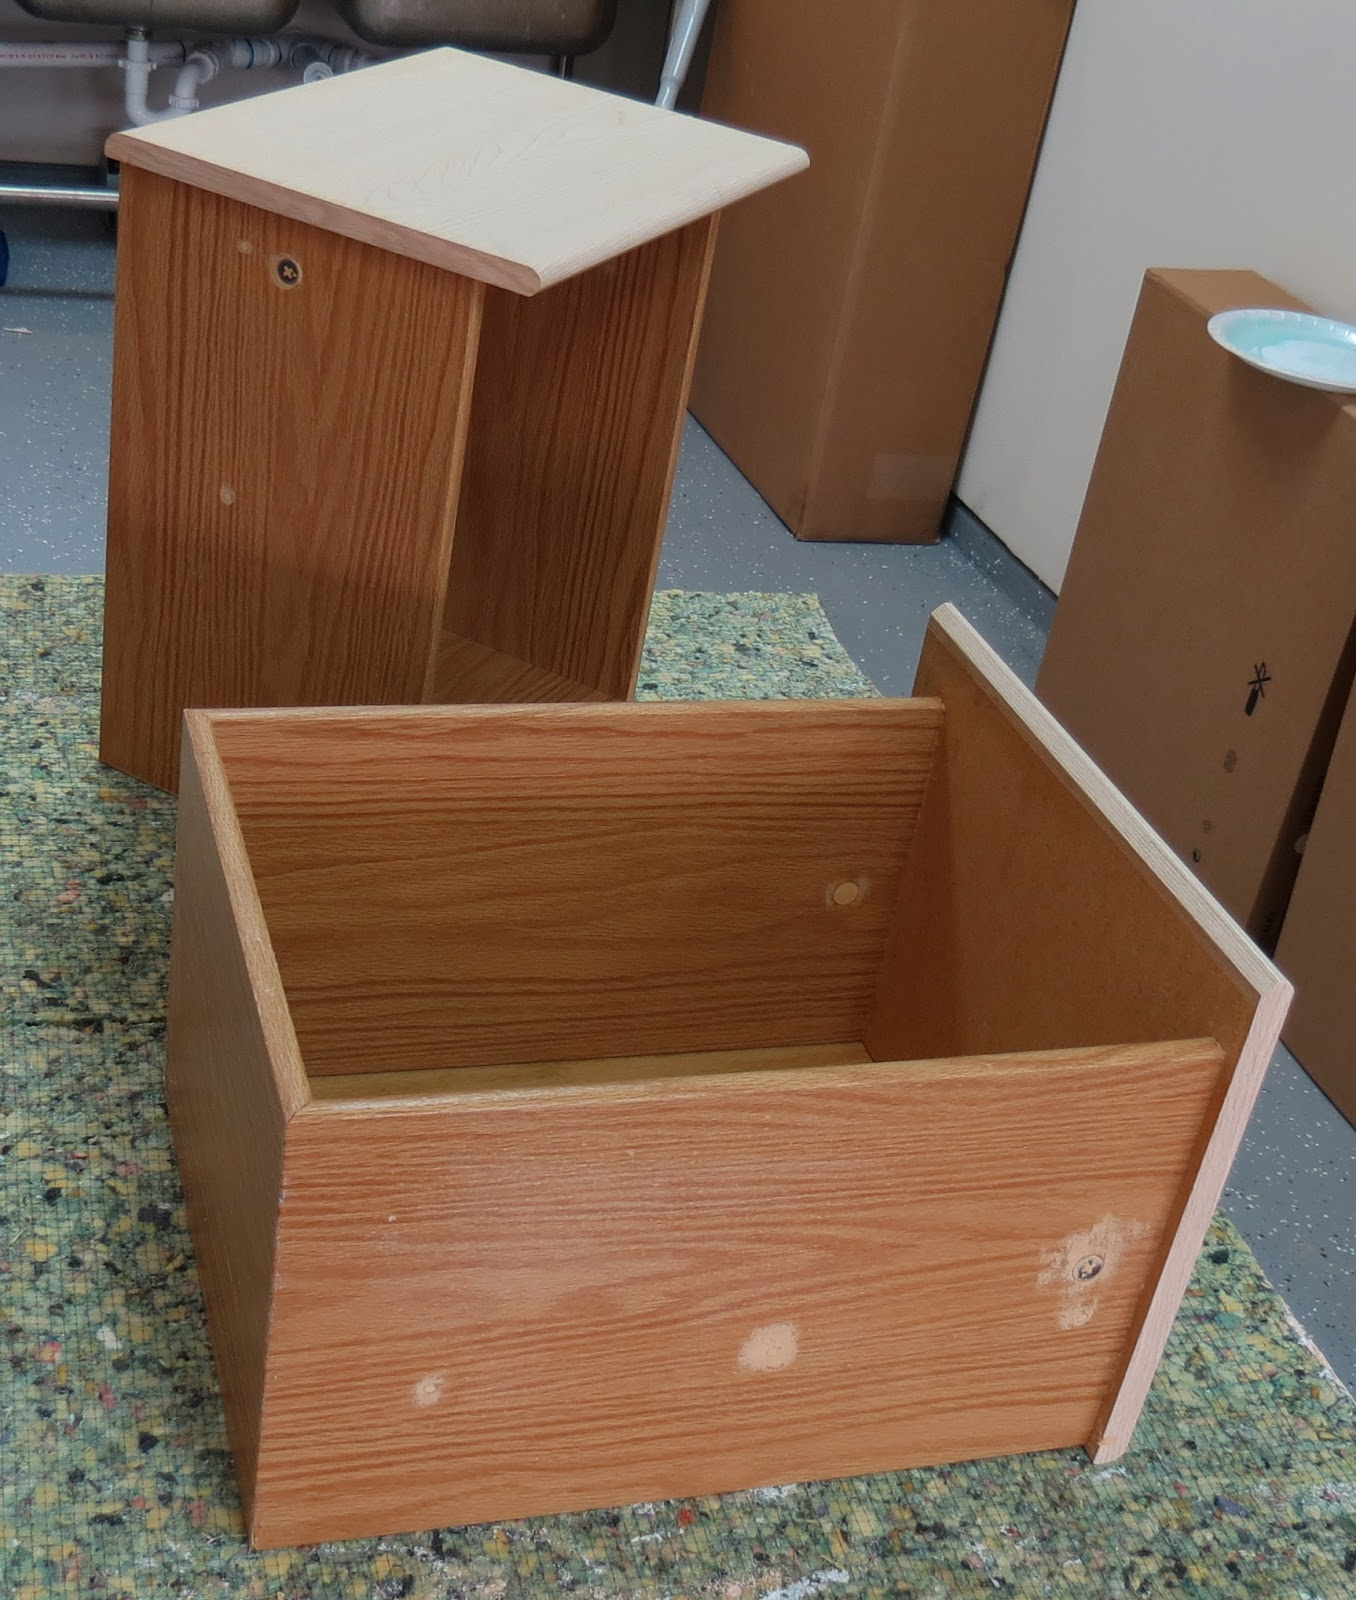 Approachable Art By Judi Hurwitt Desk Drawers To